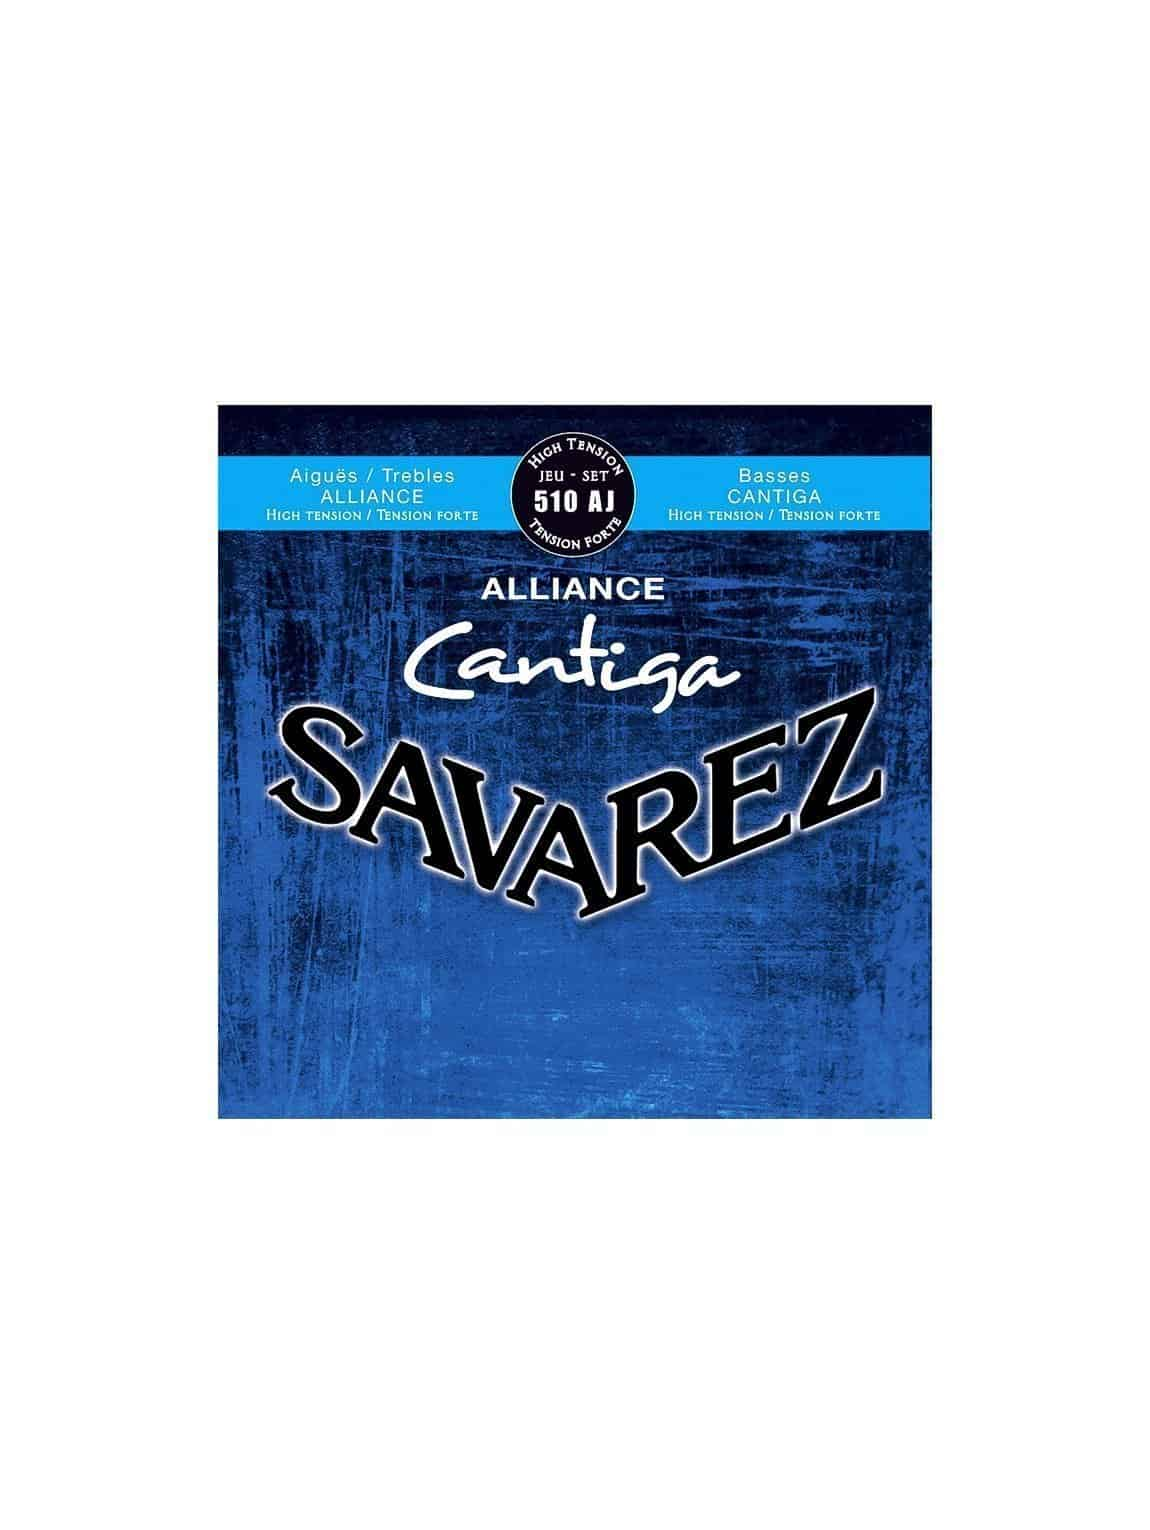 Savarez Classical Guitar Strings - 510CJ- High Tension